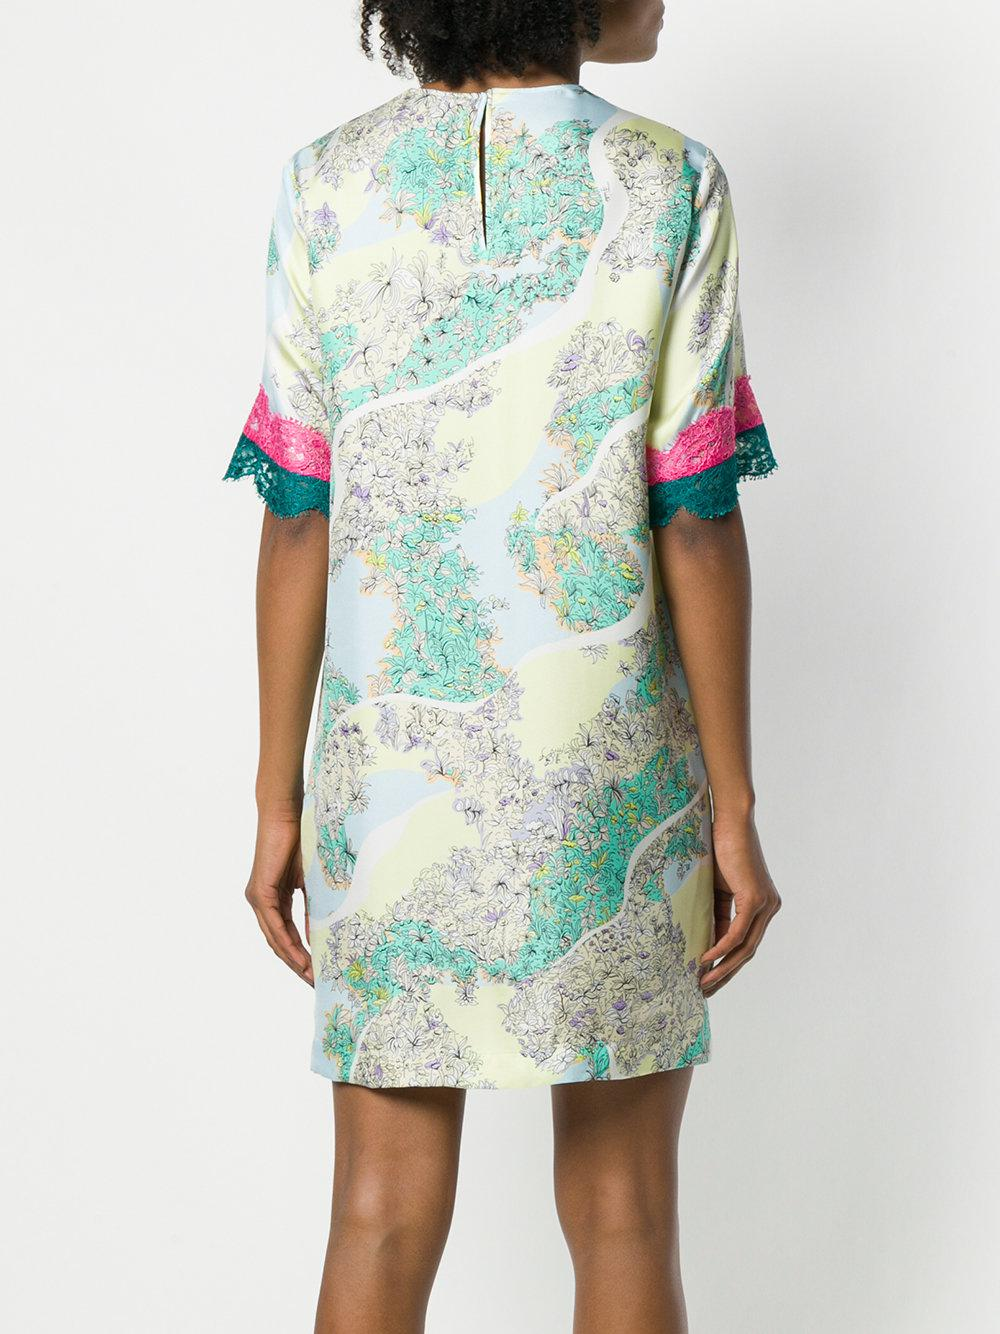 lace insert T-shirt dress - Multicolour Emilio Pucci Discount Visit Clearance Online Cheap Real Low Cost Outlet Brand New Unisex G3xAw1Fu